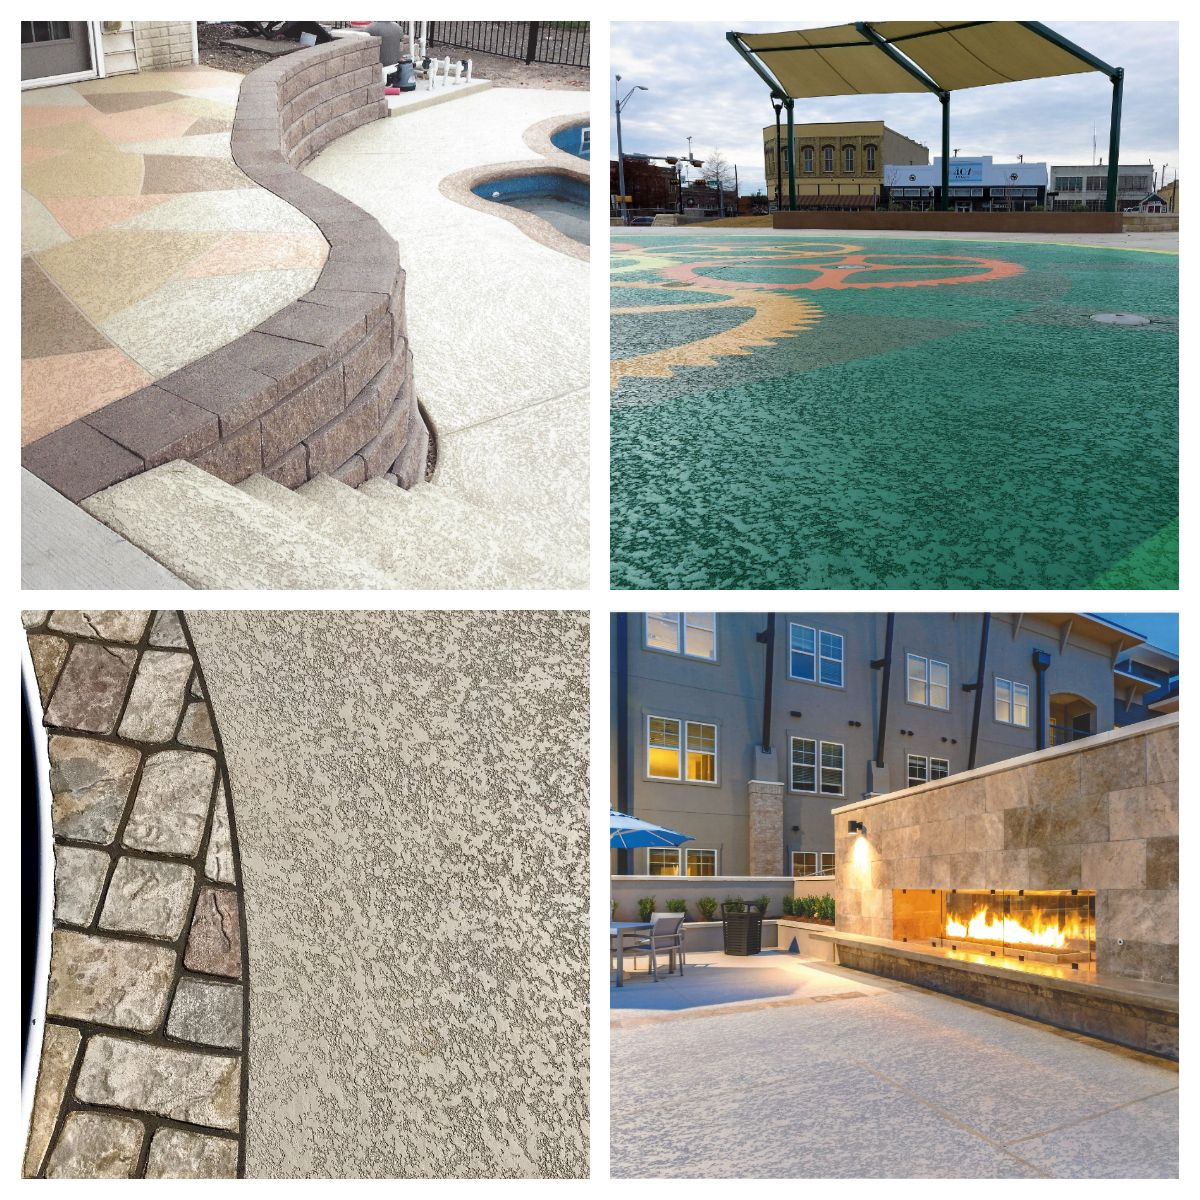 Remodeling Your Pool Deck Decorative Concrete Resurfacing Combines Form And Function At An Econ Pool Decking Concrete Backyard Pool Designs Decks Around Pools